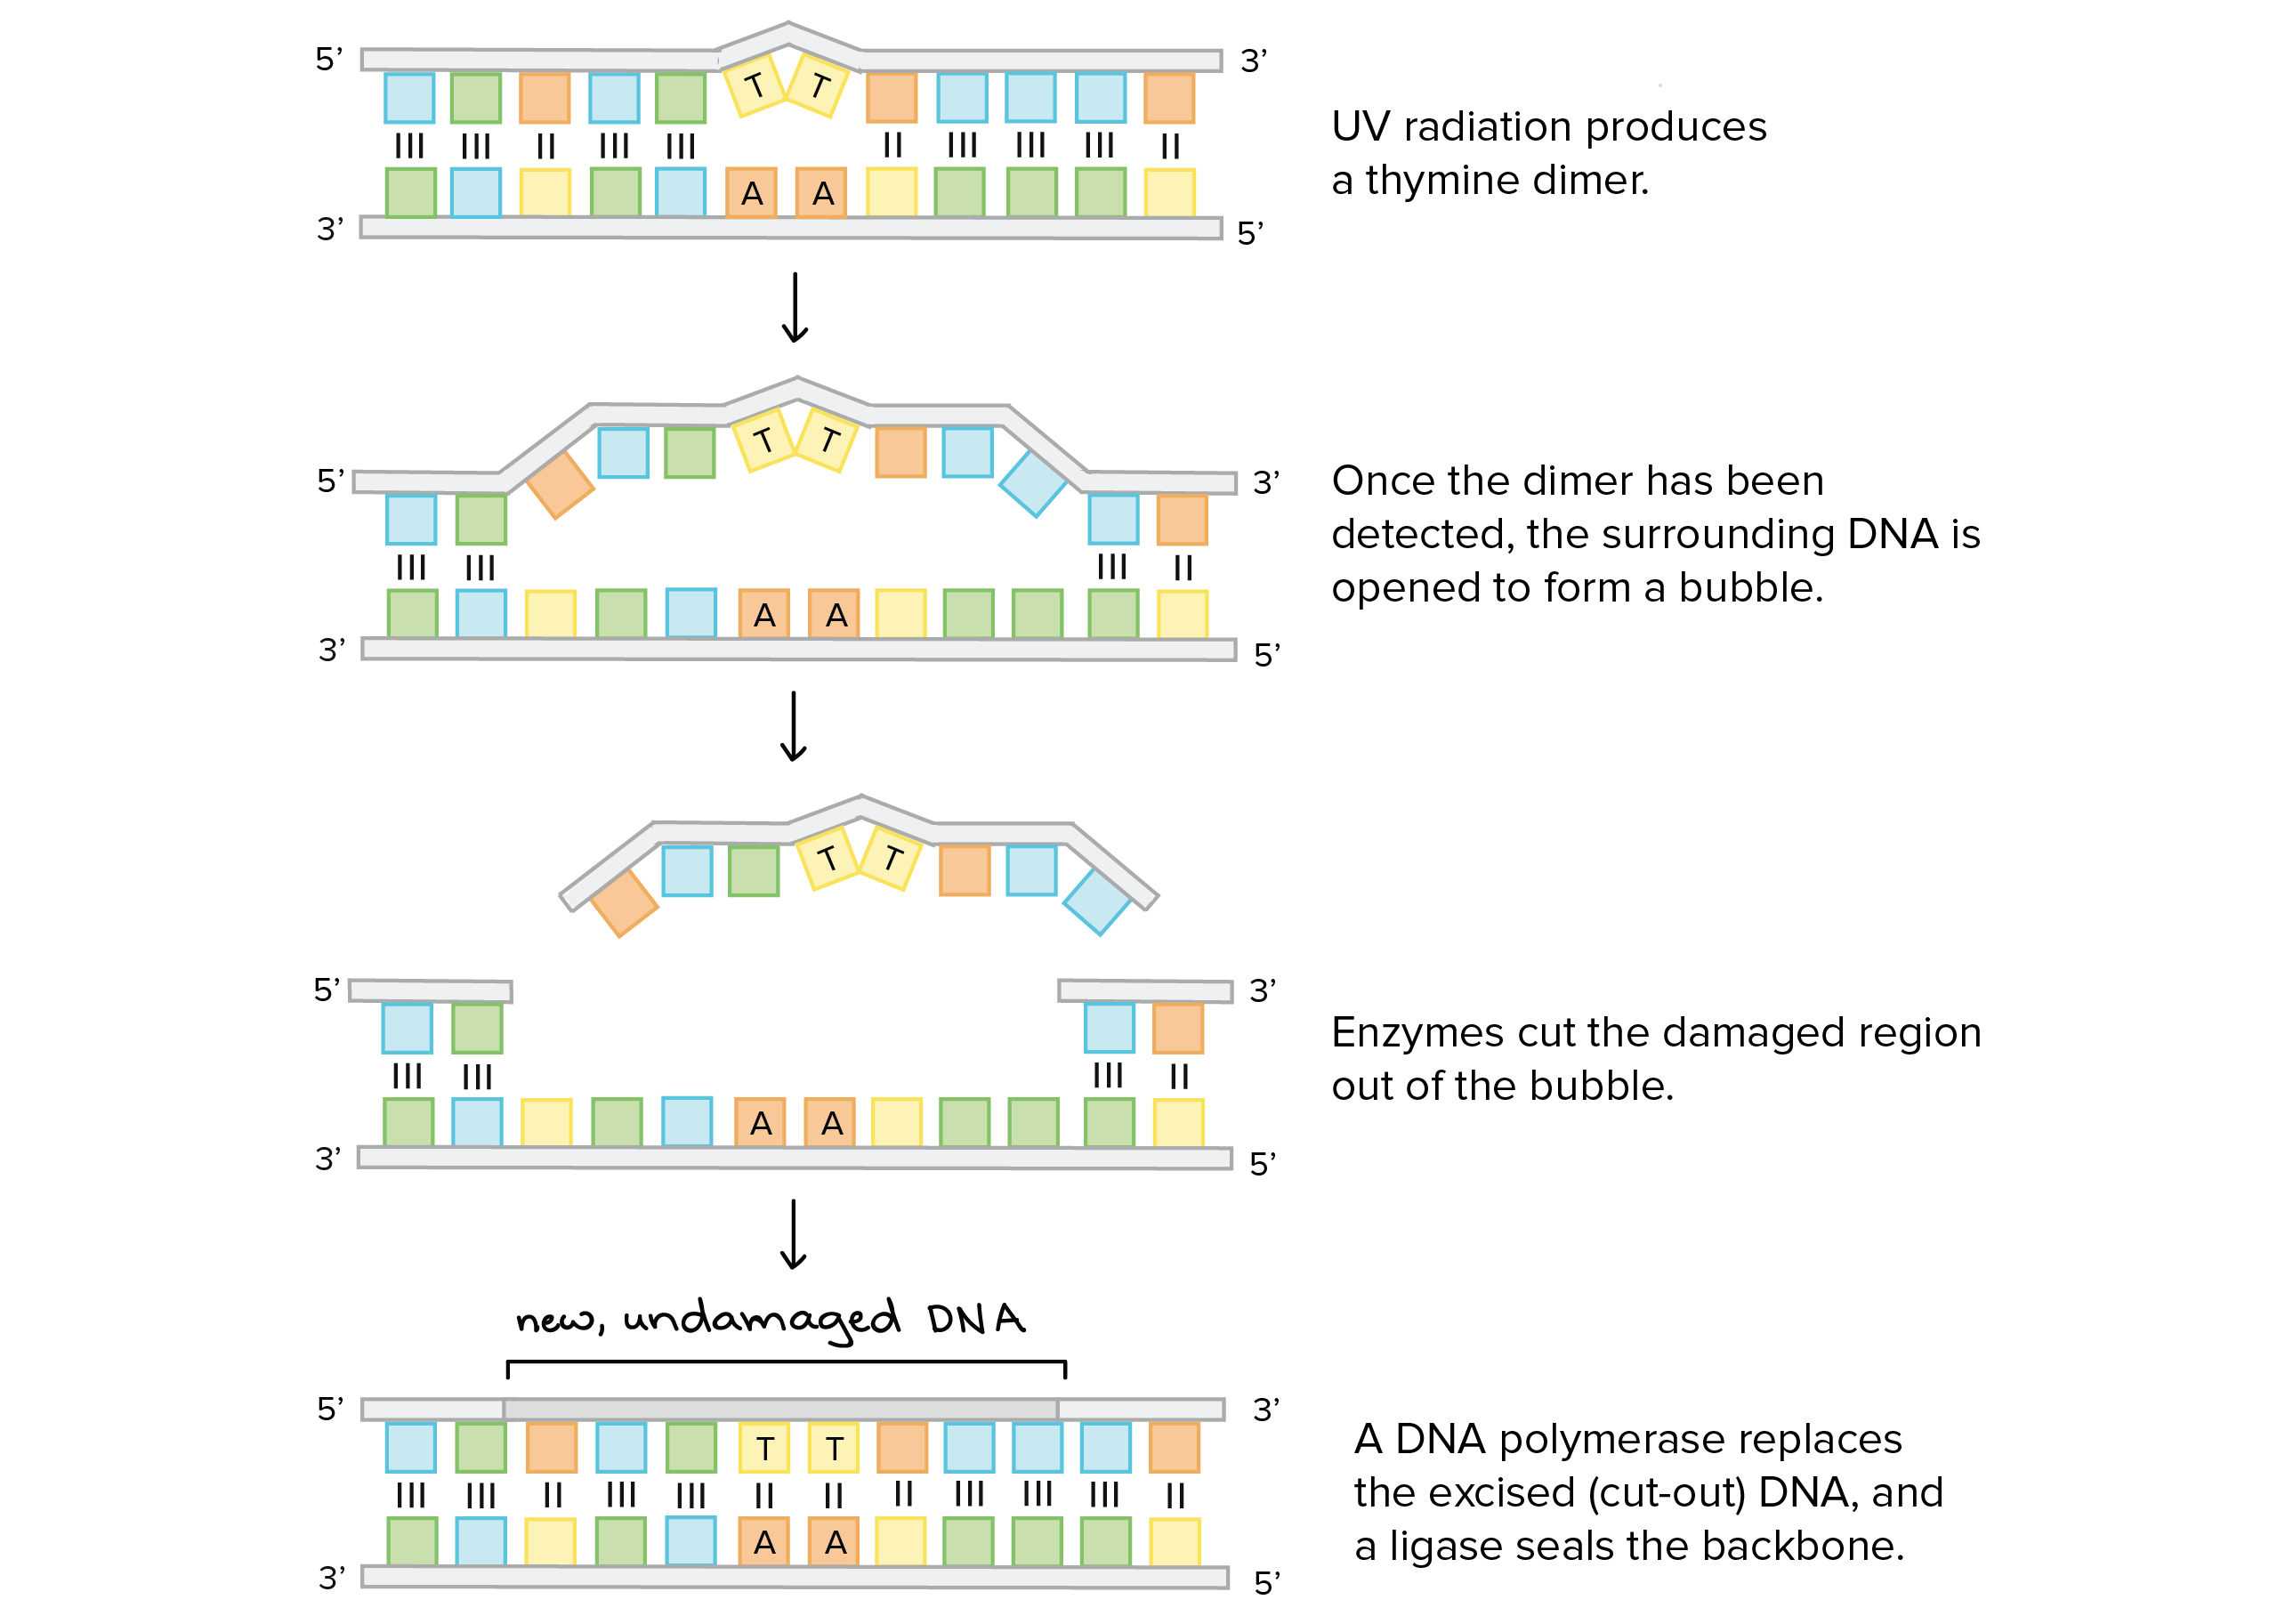 worksheet Dna Replication Practice Worksheet Answers dna replication practice khan academy